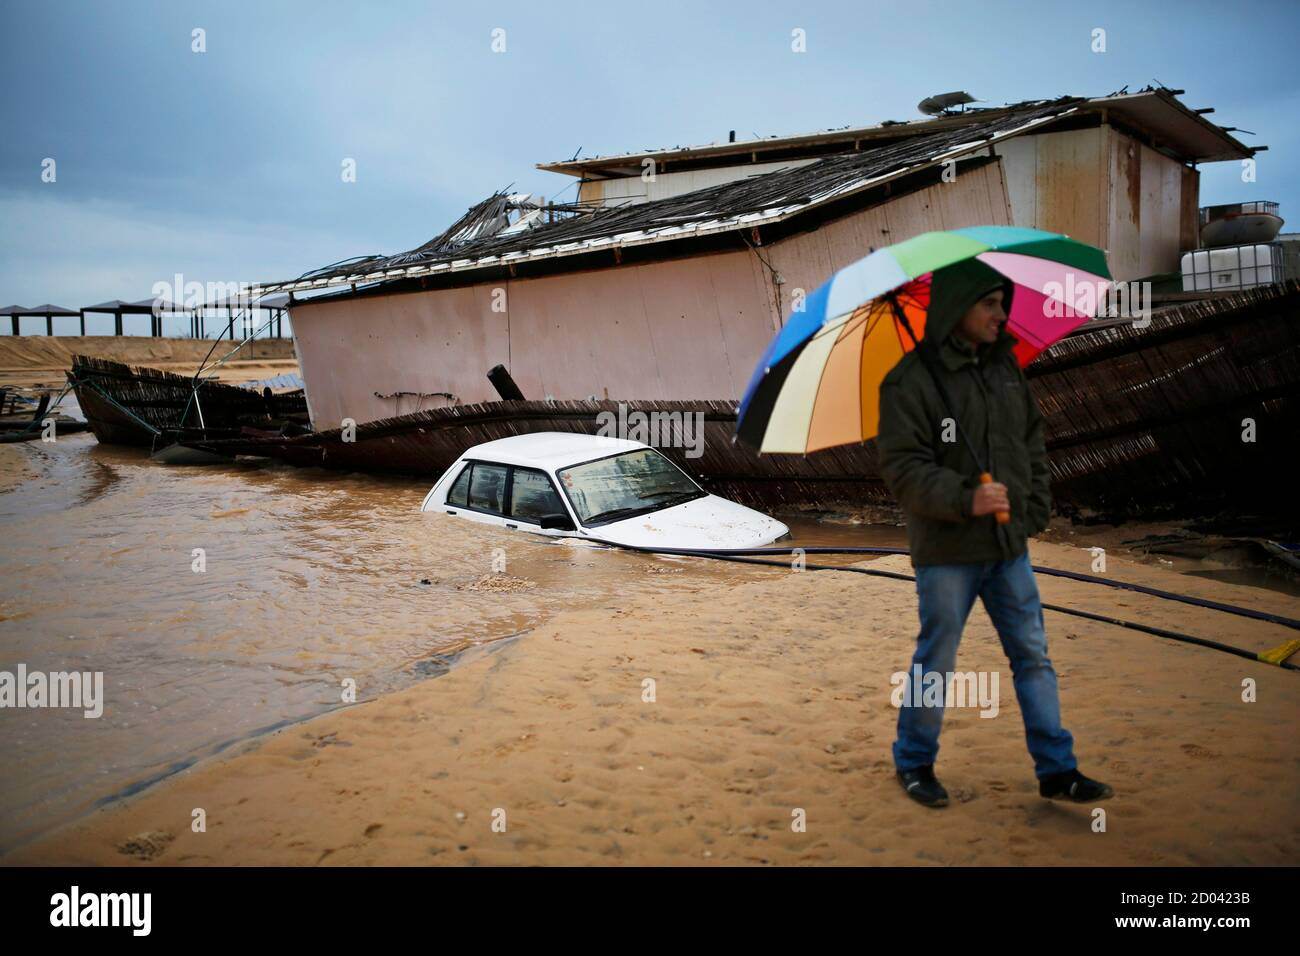 A man walks next to a car and a beach restaurant that sank into the sand following heavy rains and flooding on a beach of the Mediterranean sea near Kibbutz Nitzanim in southern Israel December 14, 2013. REUTERS/Amir Cohen (ISRAEL - Tags: ENVIRONMENT TPX IMAGES OF THE DAY) Stock Photo